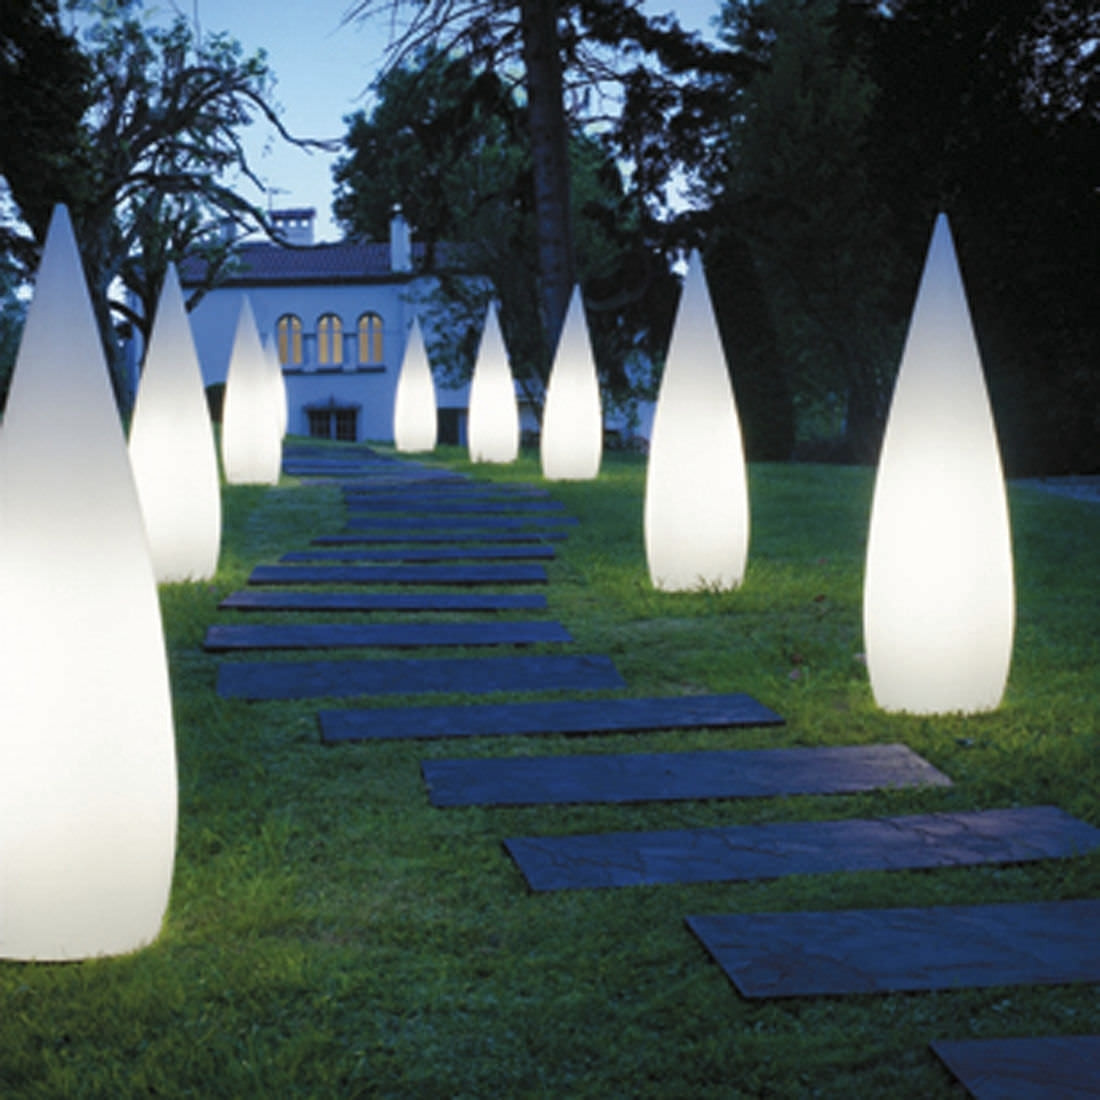 Luces solares Para Jardin Único Beautiful Outdoor Bollard Lighting Style — Bistrodre Porch Of 43  Magnífica Luces solares Para Jardin